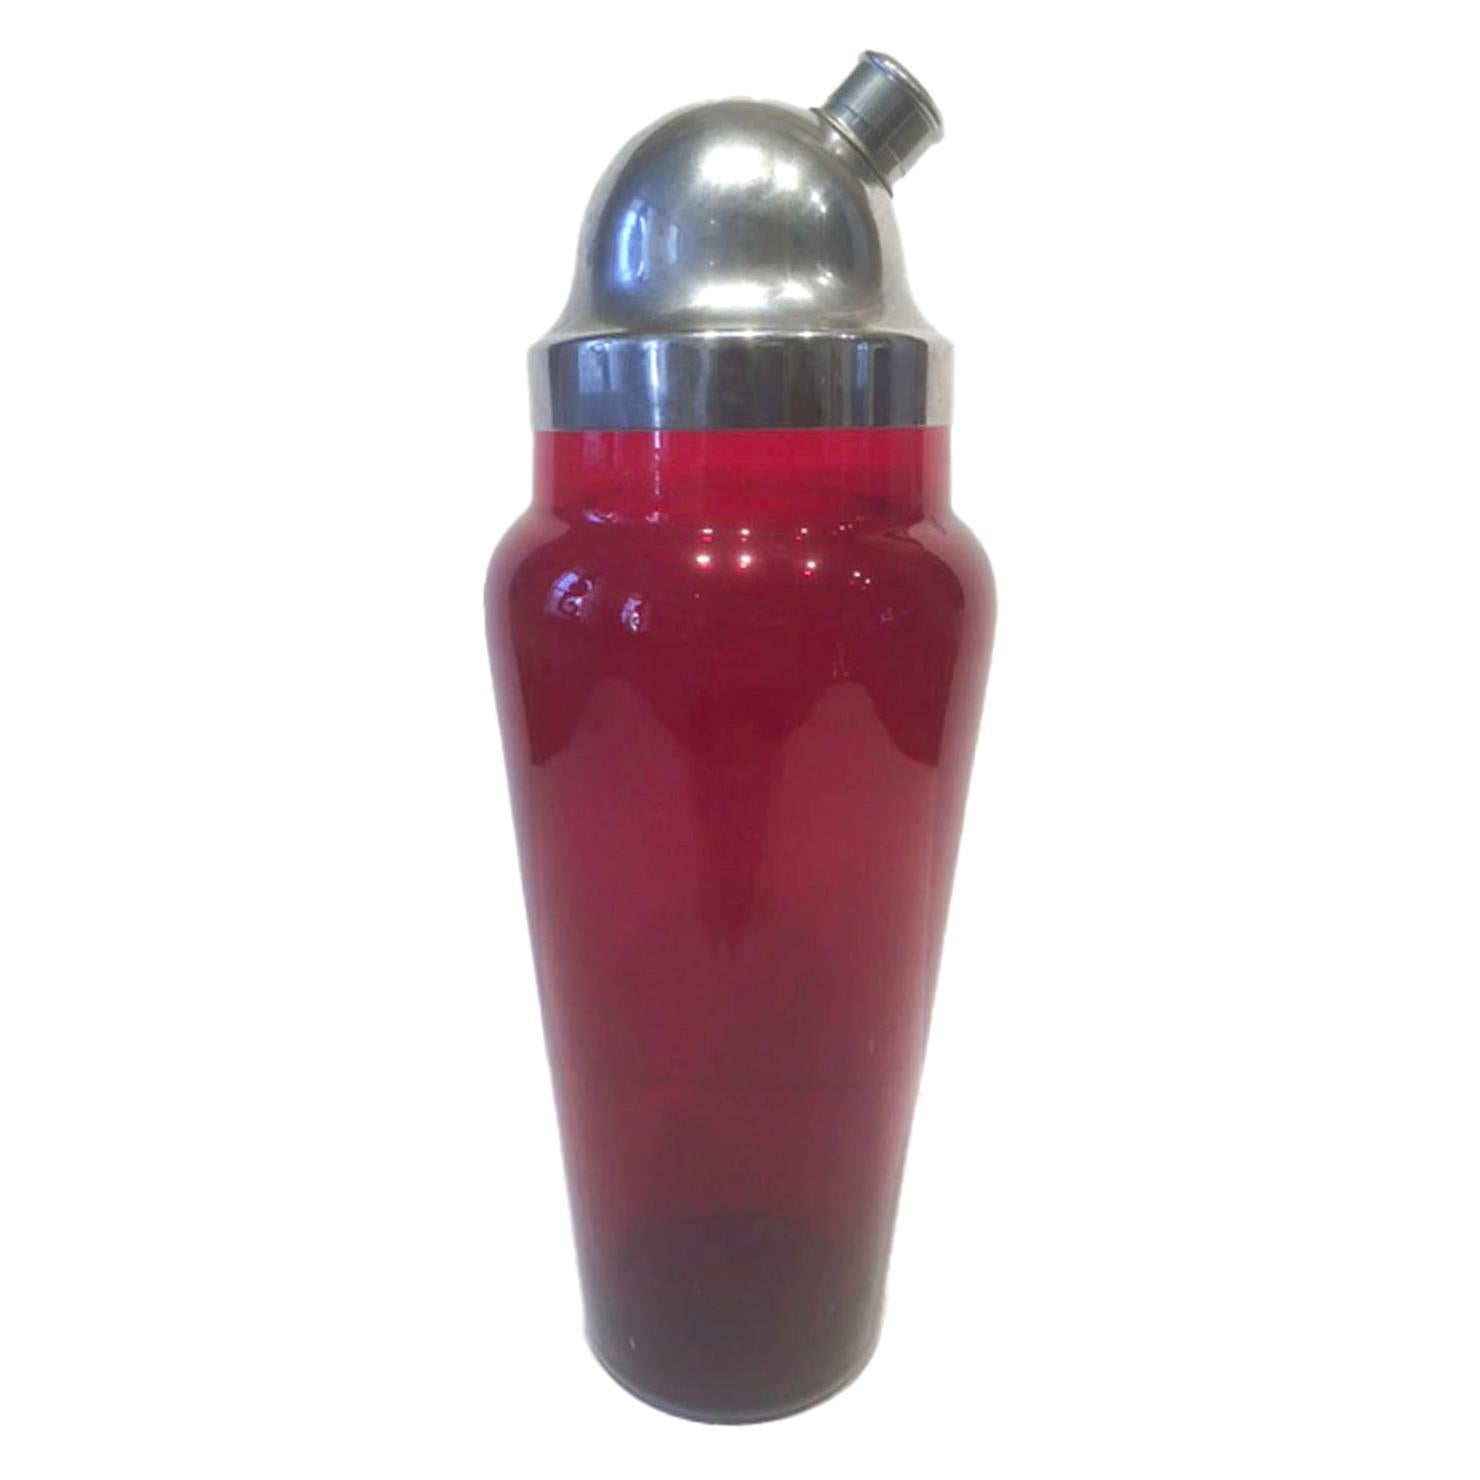 Vintage Ruby Red Glass Cocktail Shaker with Domed Chrome Lid